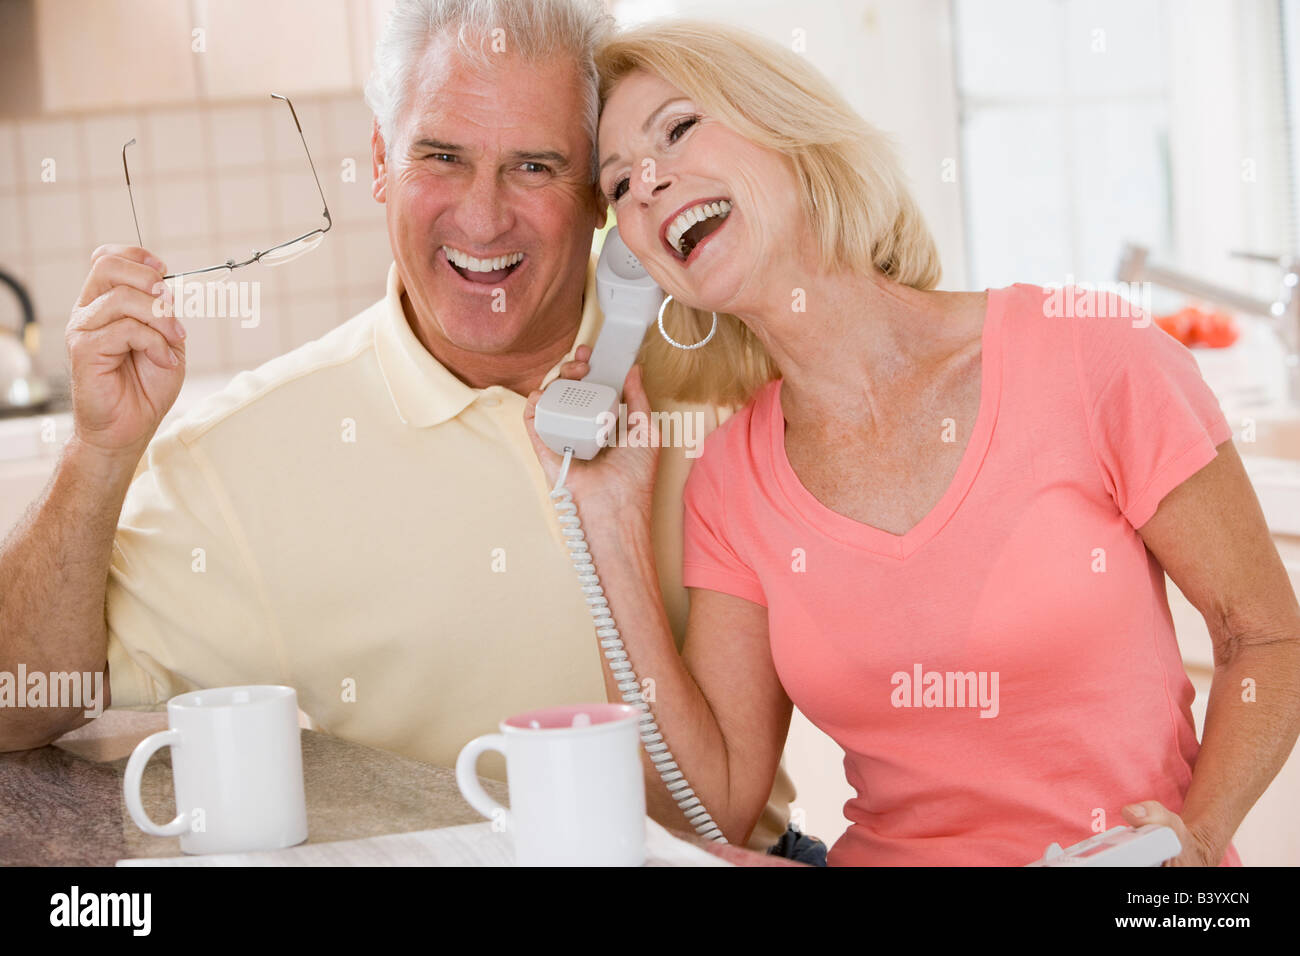 Couple in kitchen using telephone together and laughing - Stock Image